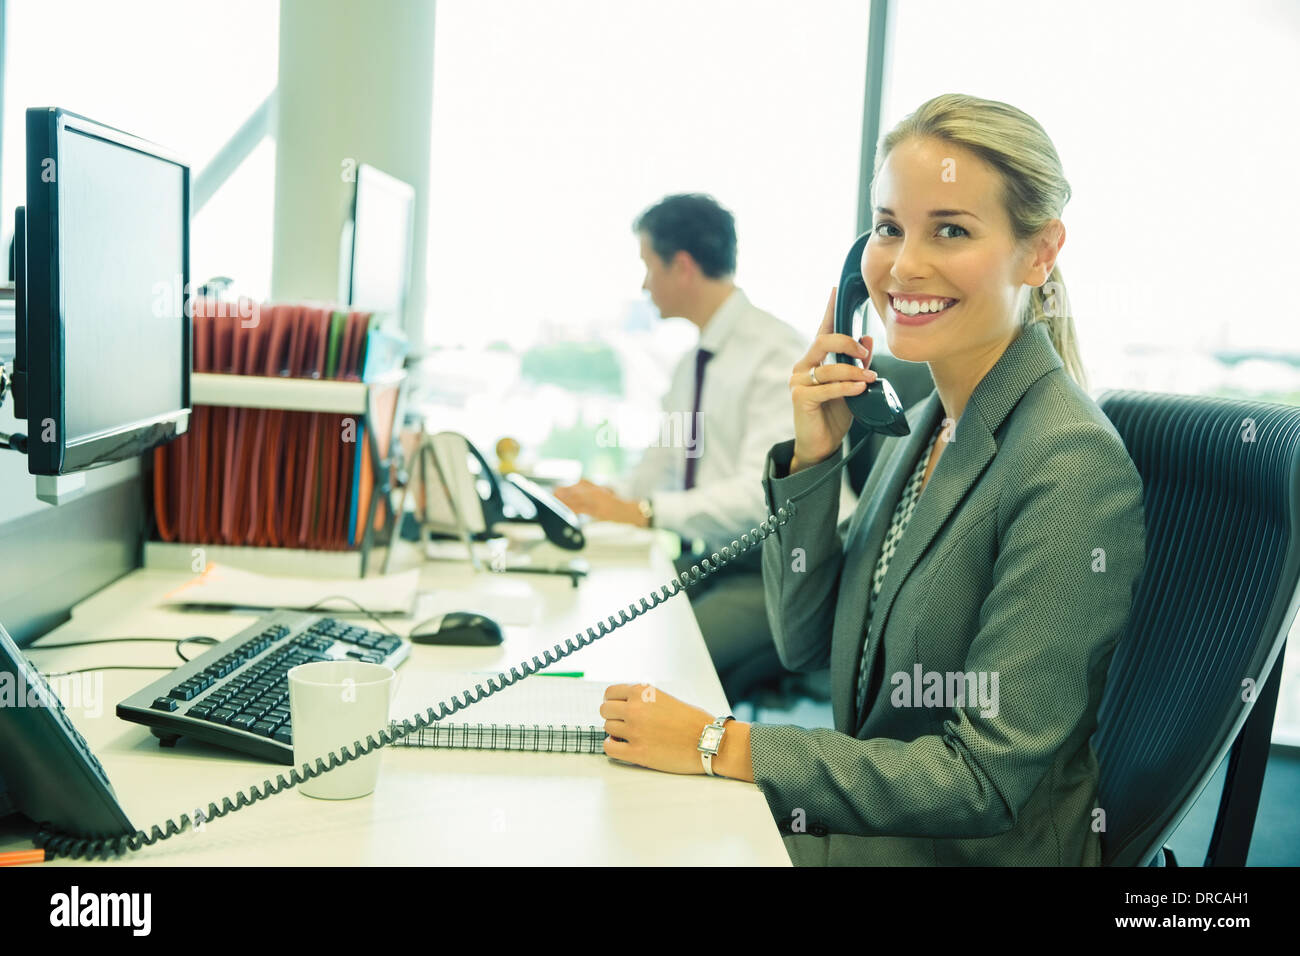 Businesswoman talking on telephone in office - Stock Image